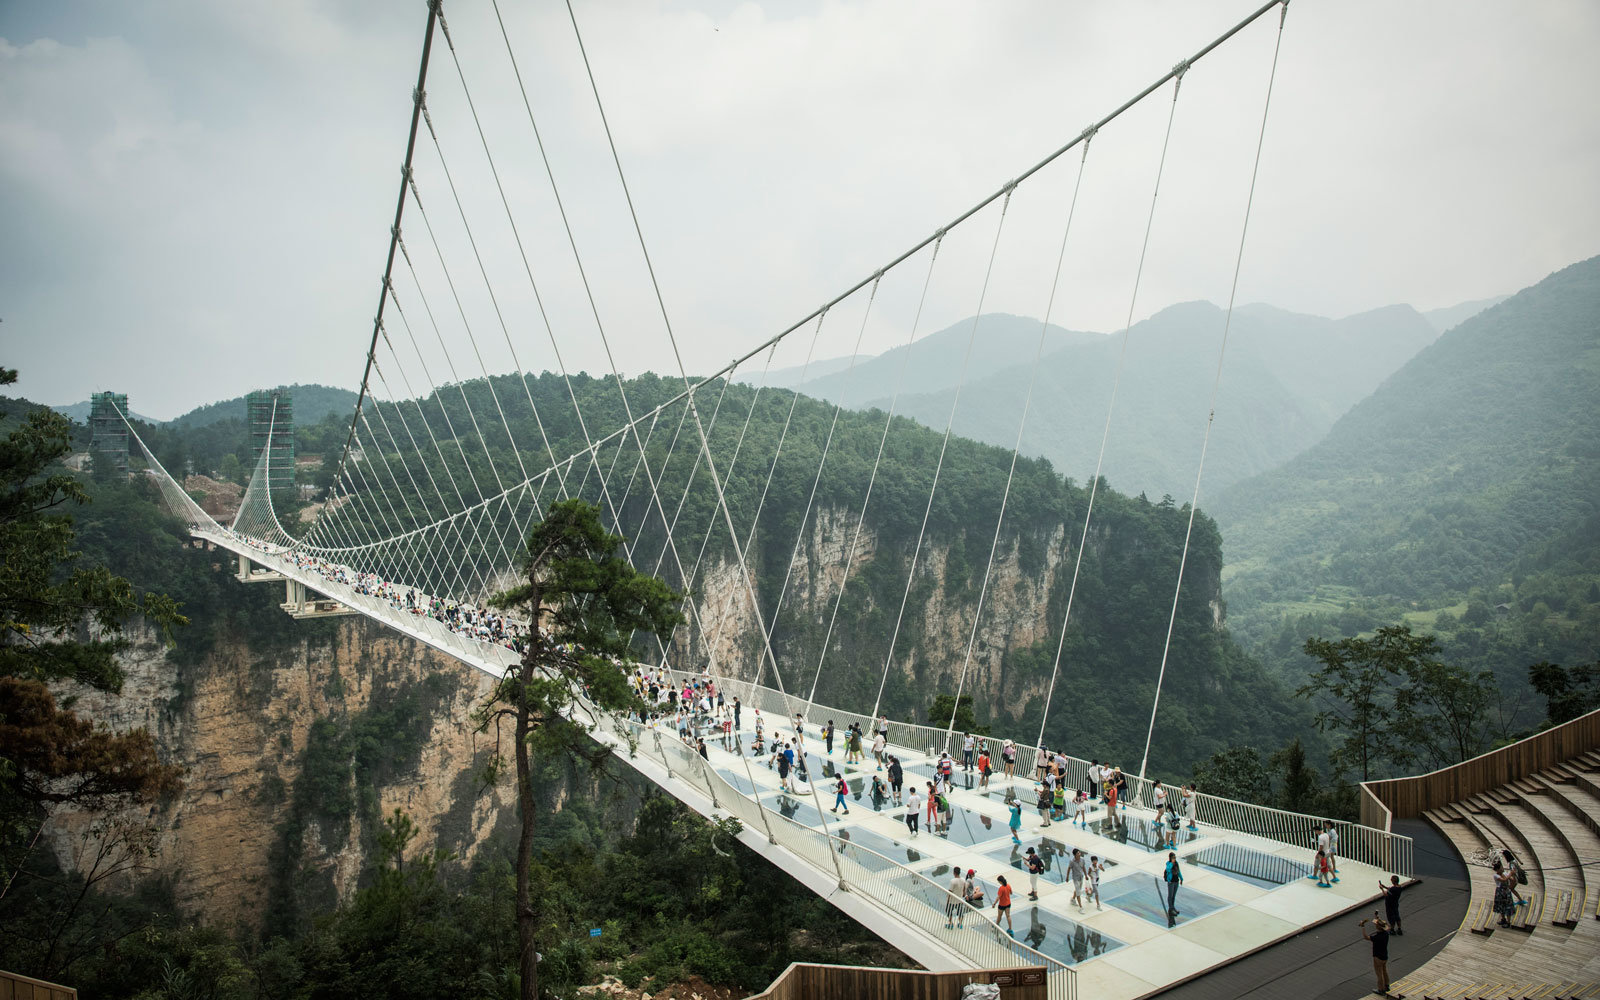 Another view of the glass bridge.